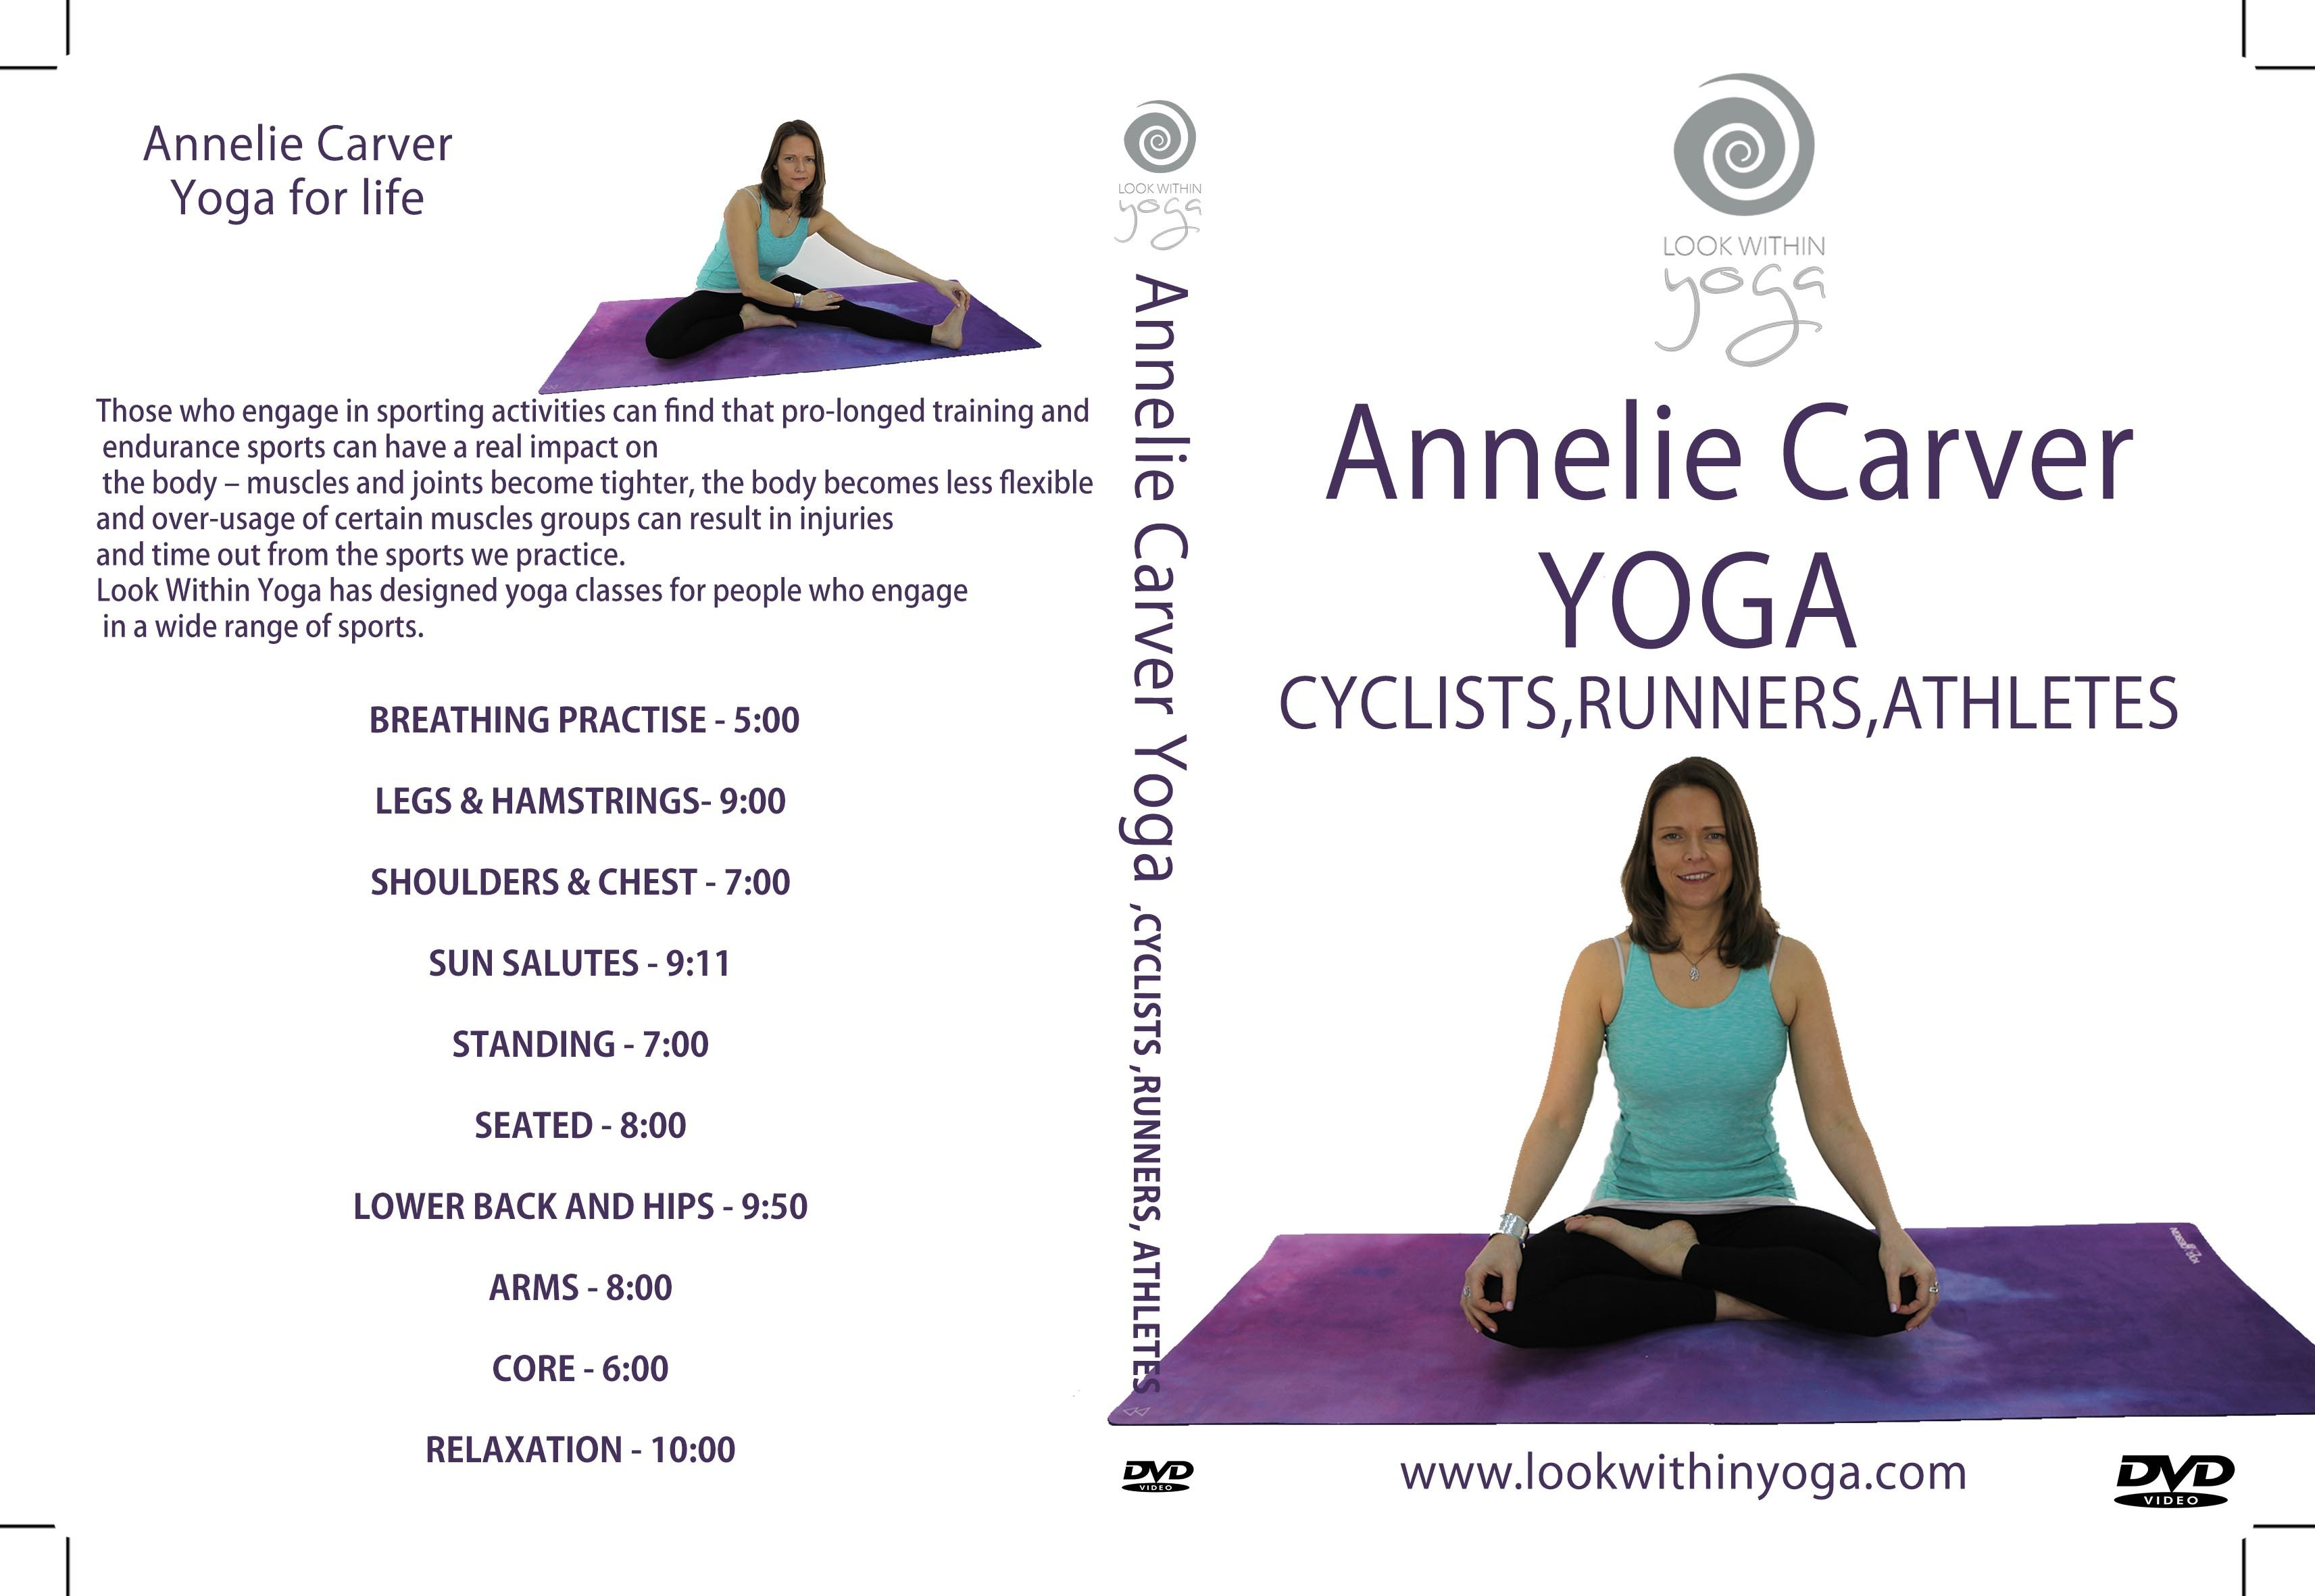 Yoga for Cyclists, Runners, Athletes DVD 00008